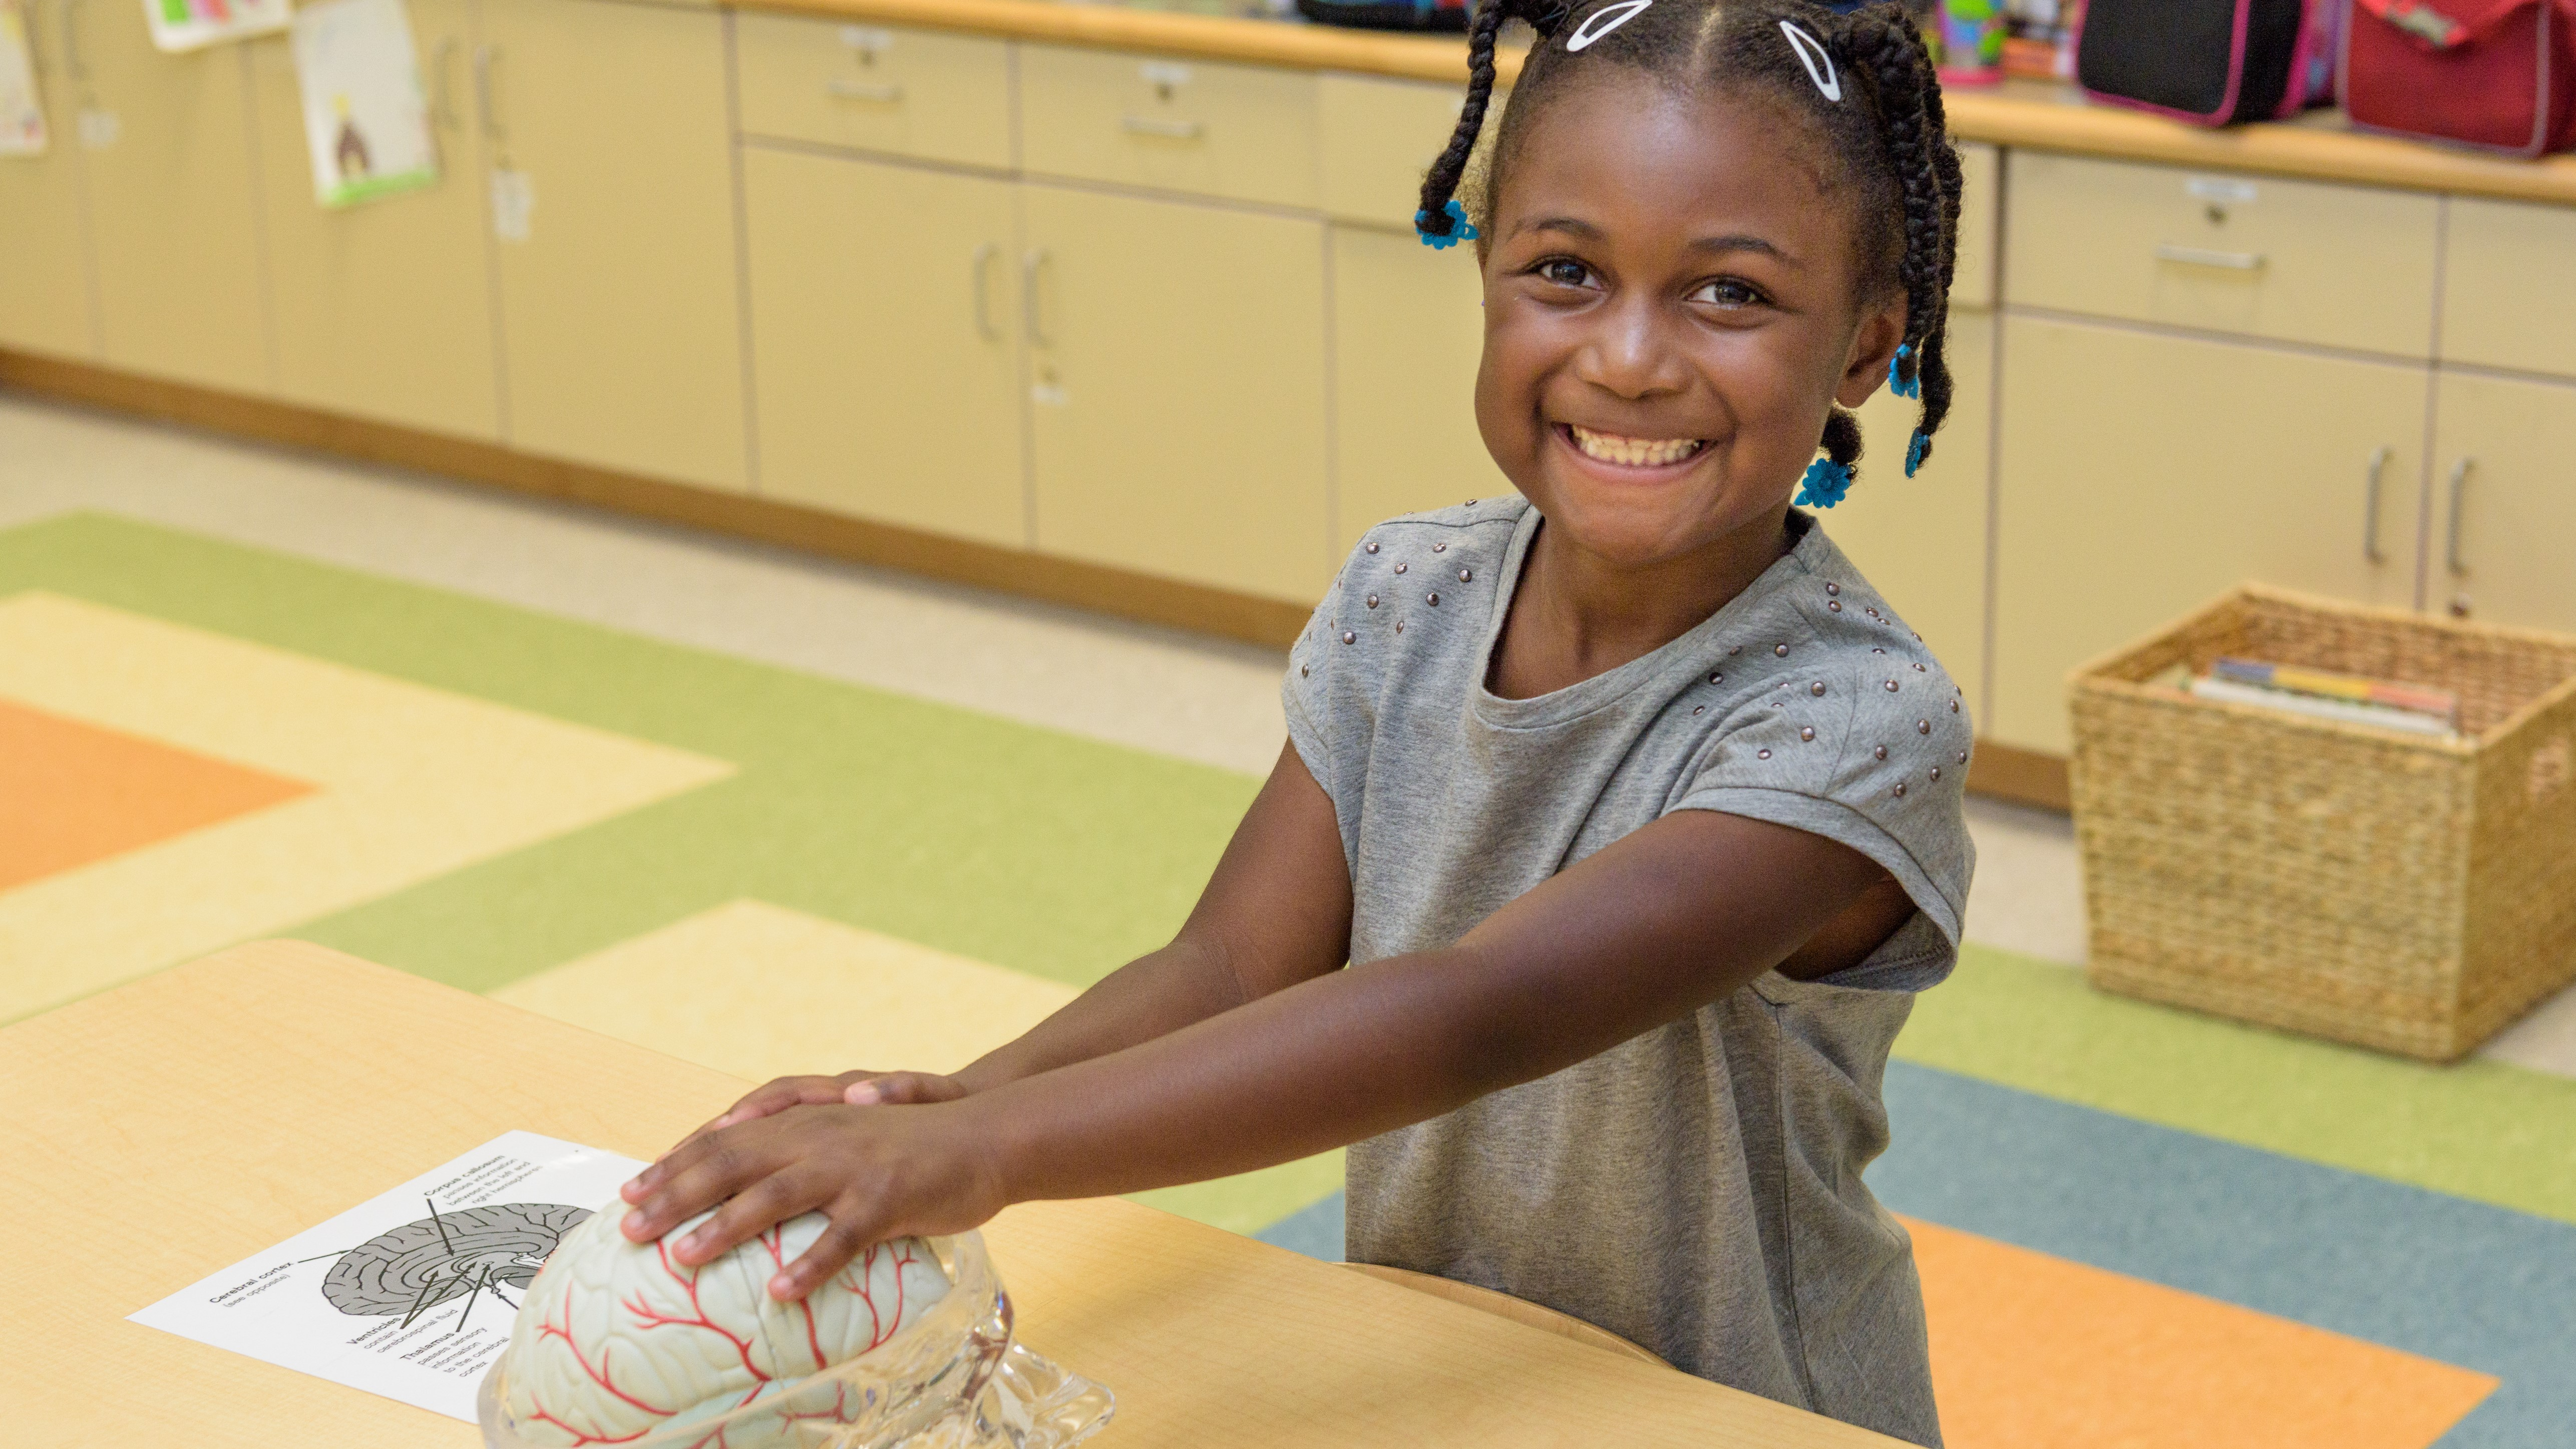 A young girl enjoys a science activity investigating the human brain.